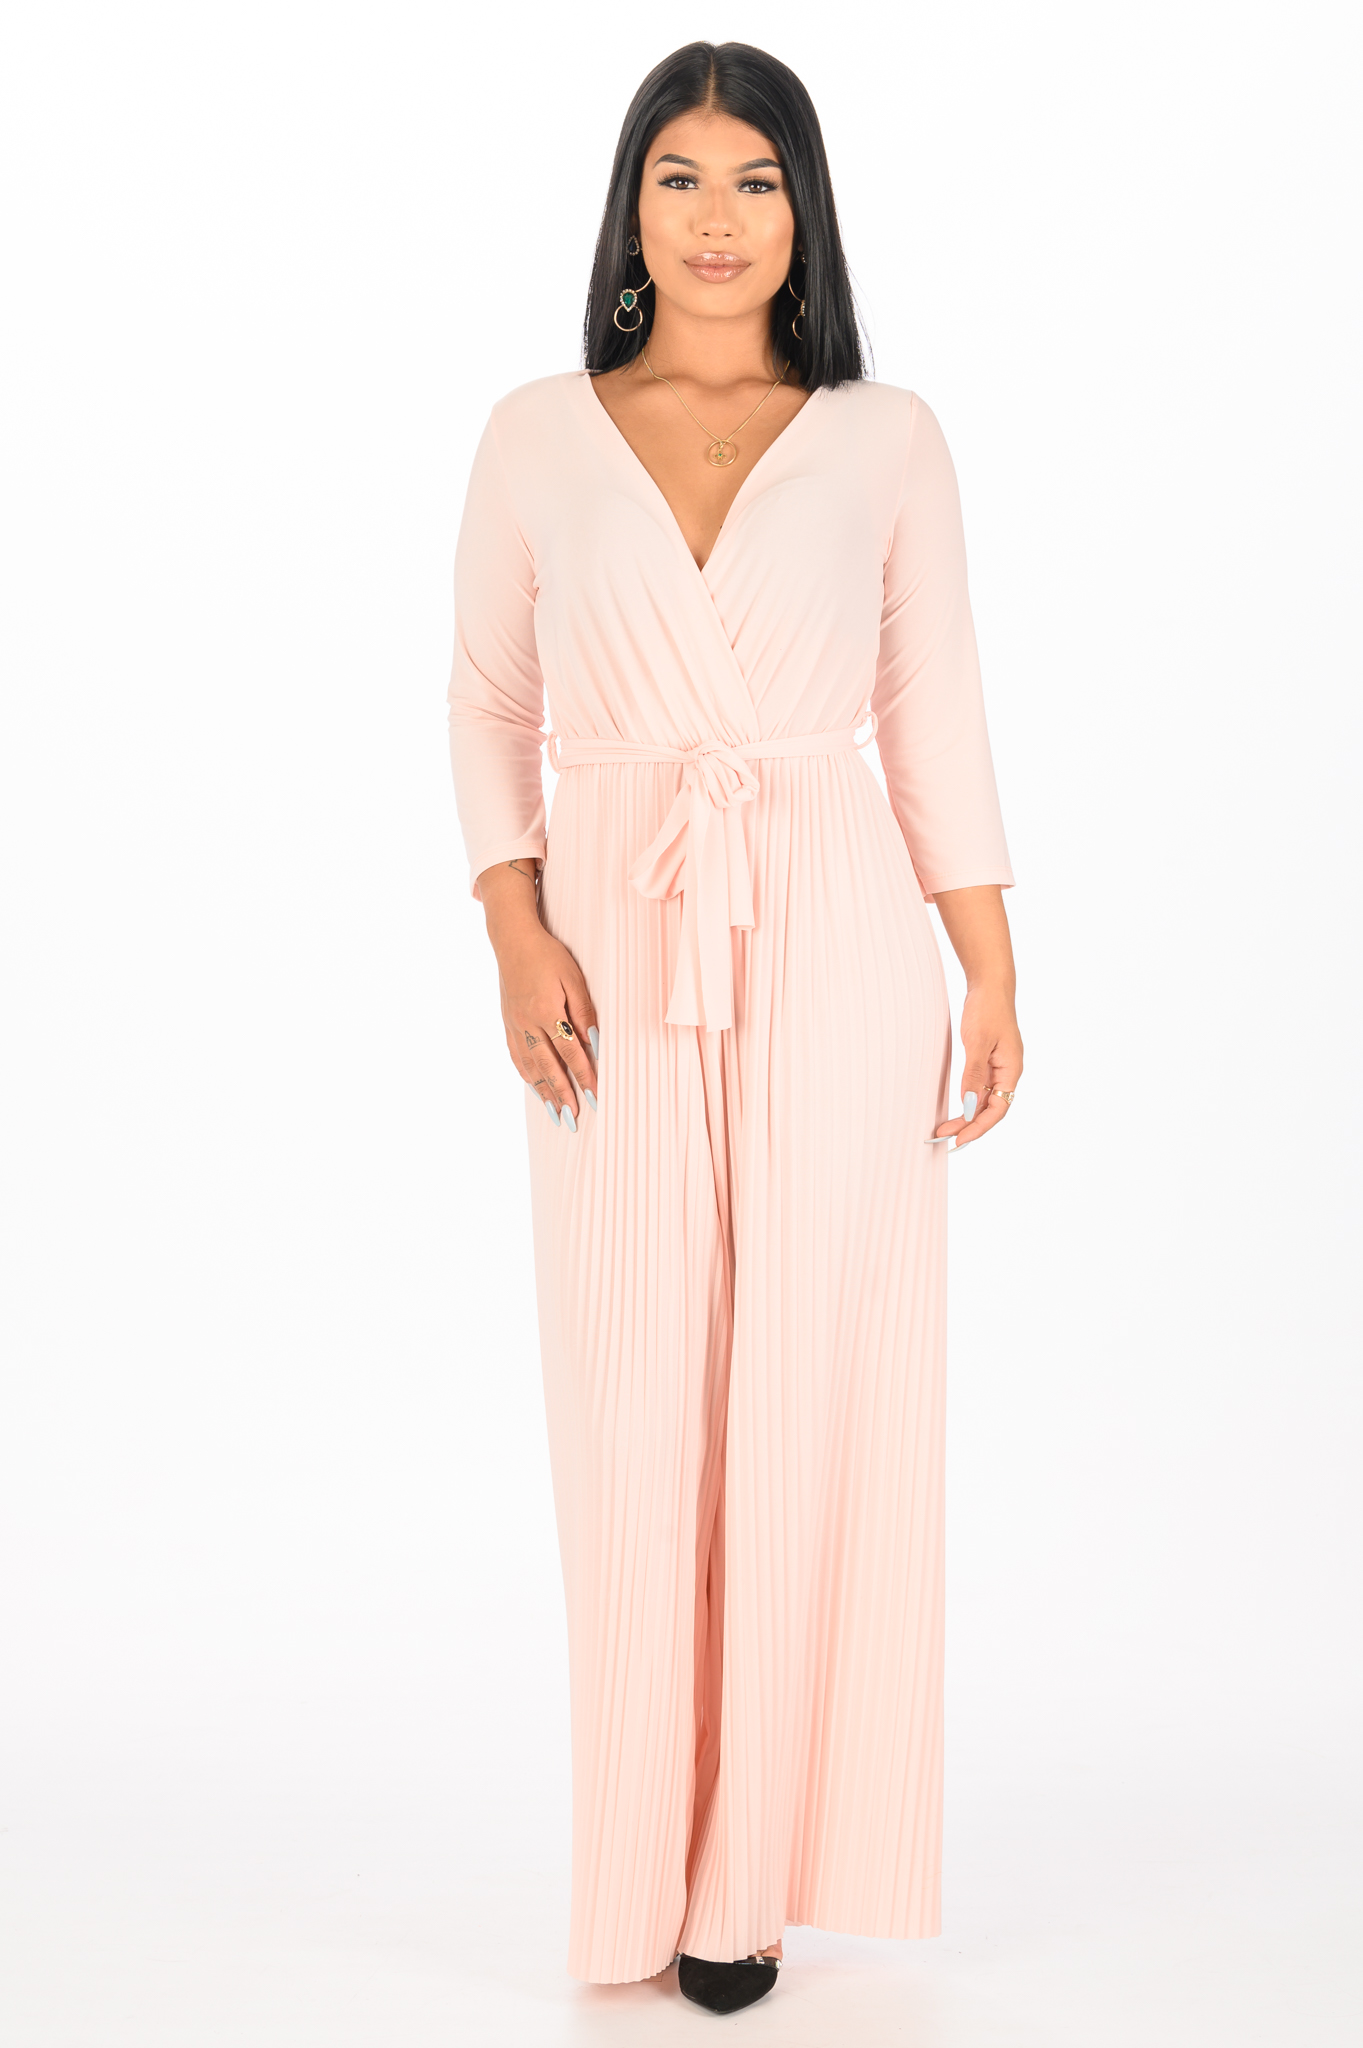 Miss Beauty of the Netherlands Jumpsuit